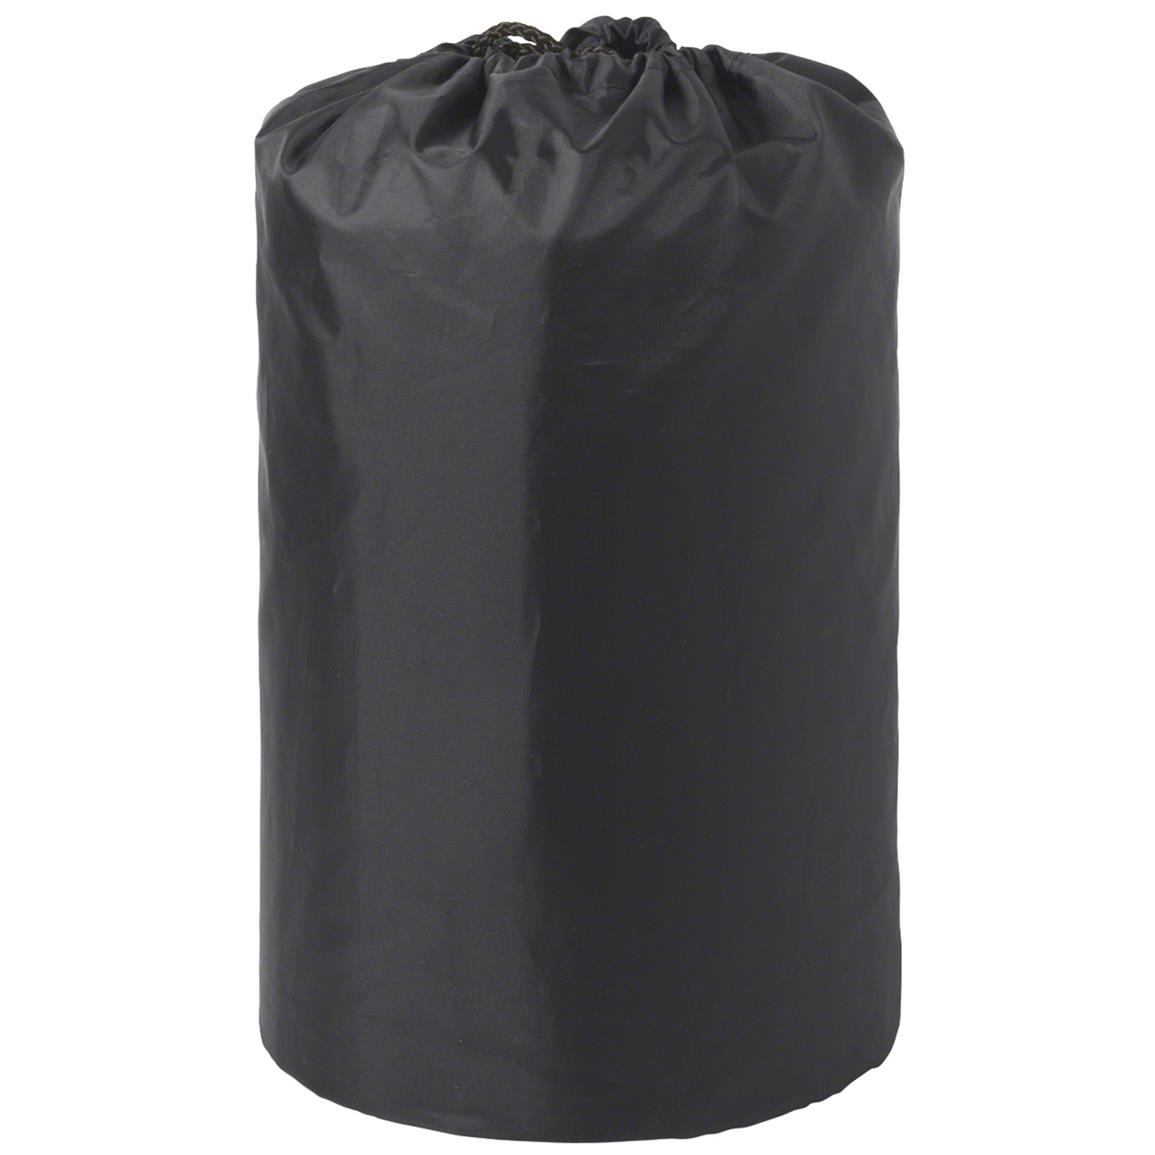 Black / Gray storage bag